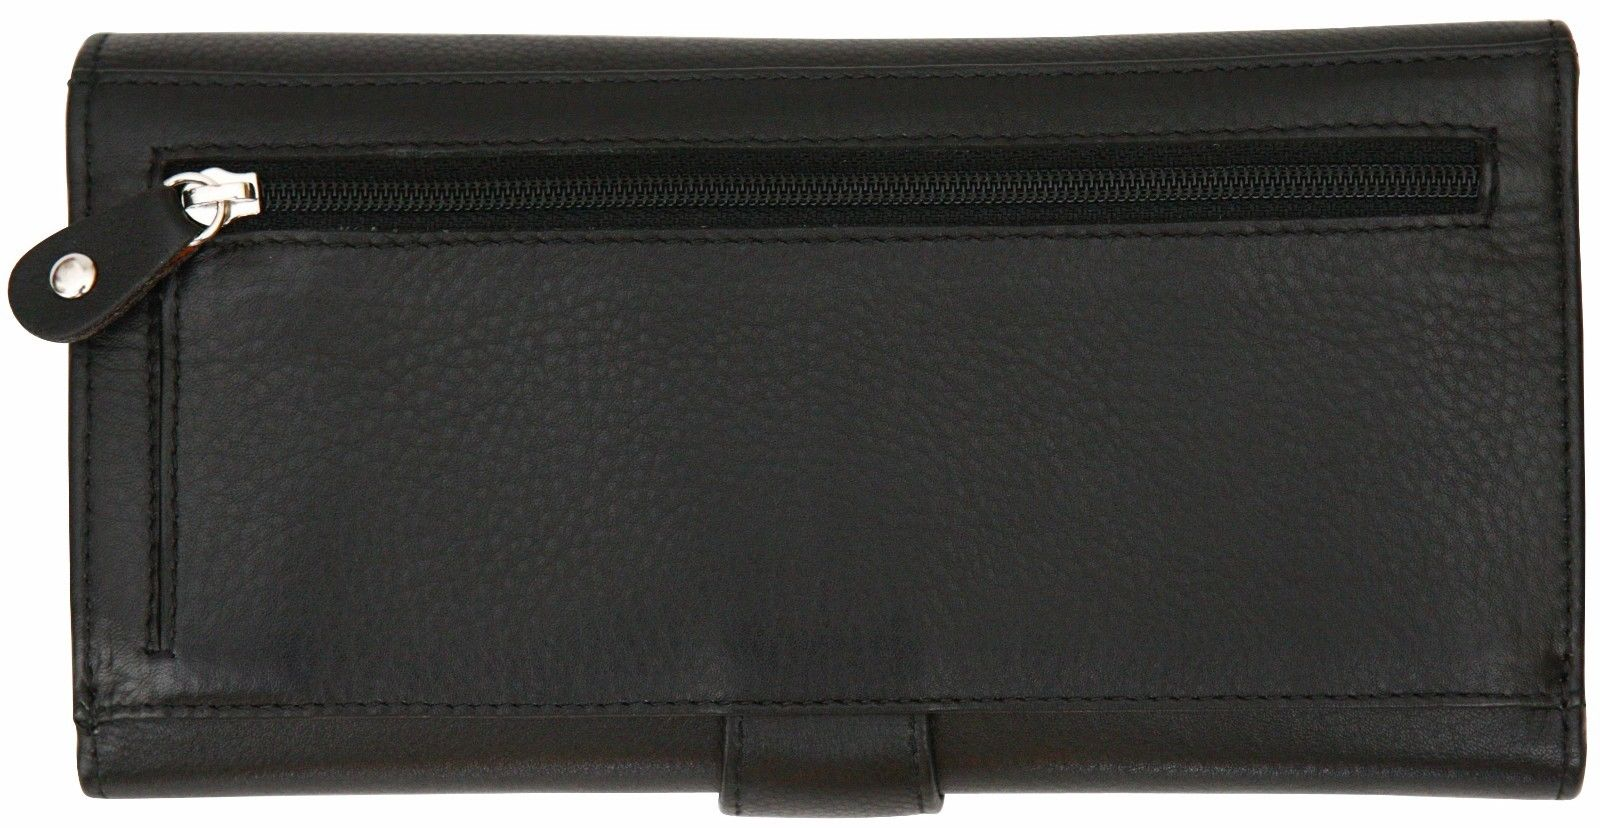 Felda-RFID-Ladies-Leather-Soft-Wallet-Large-Capacity-Purse-Womens-Multi-24-Card miniatuur 18